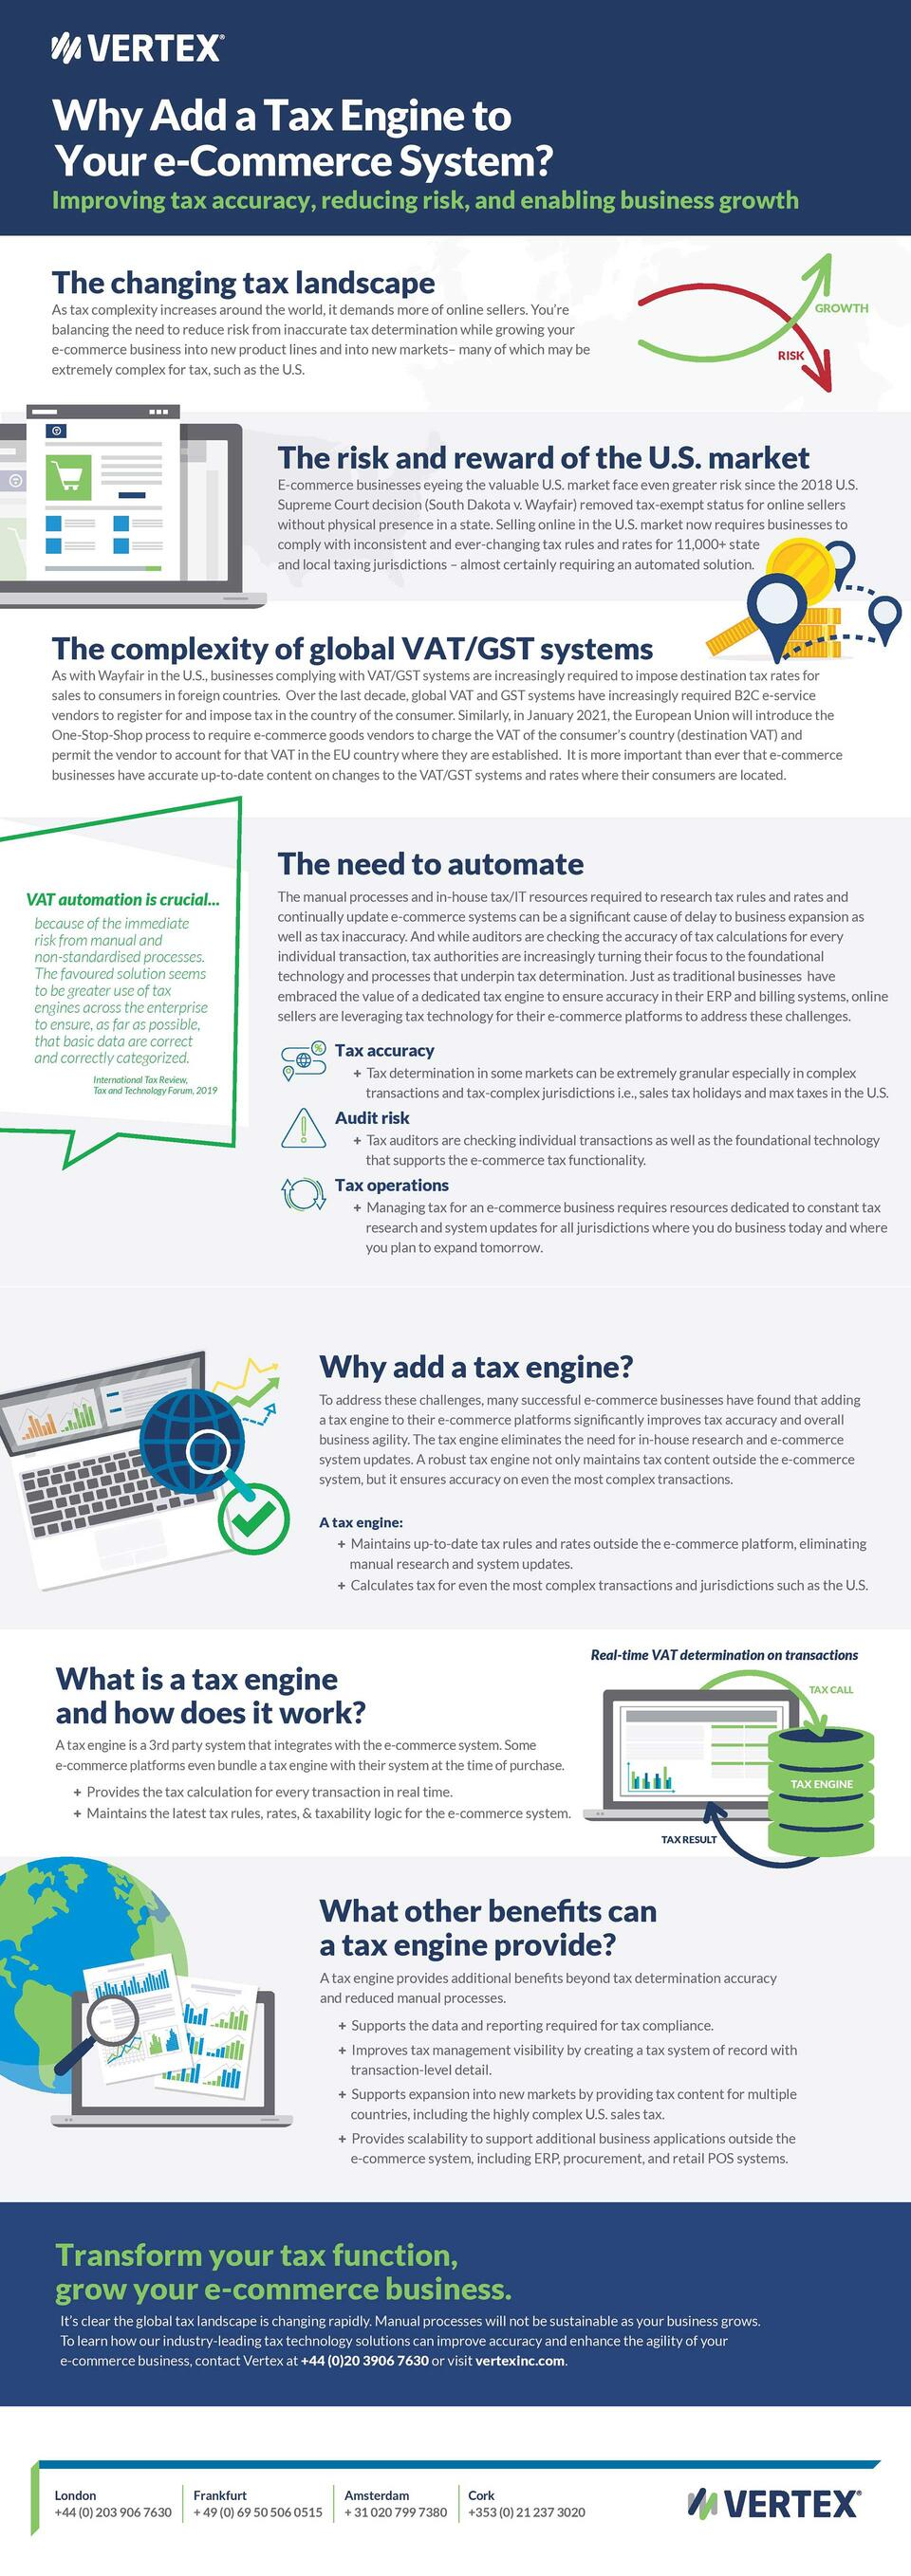 Why Add a tax Engine to your e-commerce system